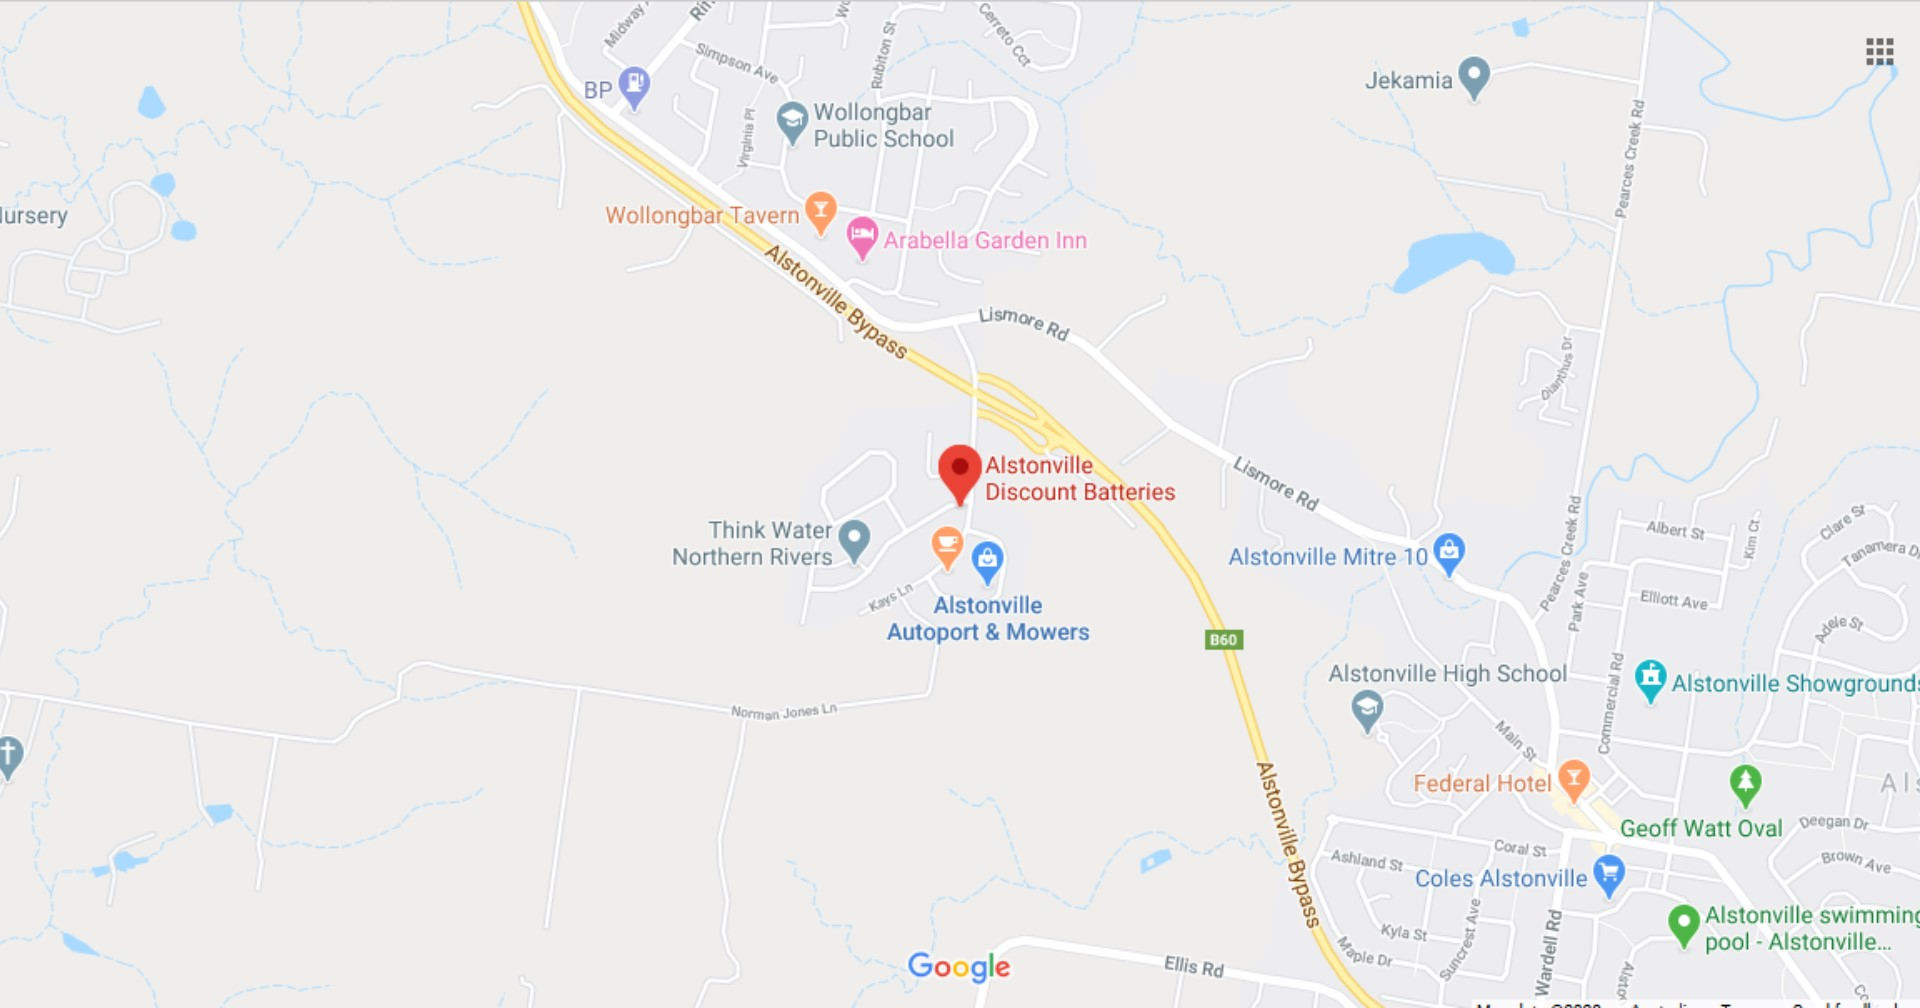 Alstonville Discount Batteries - Google Map